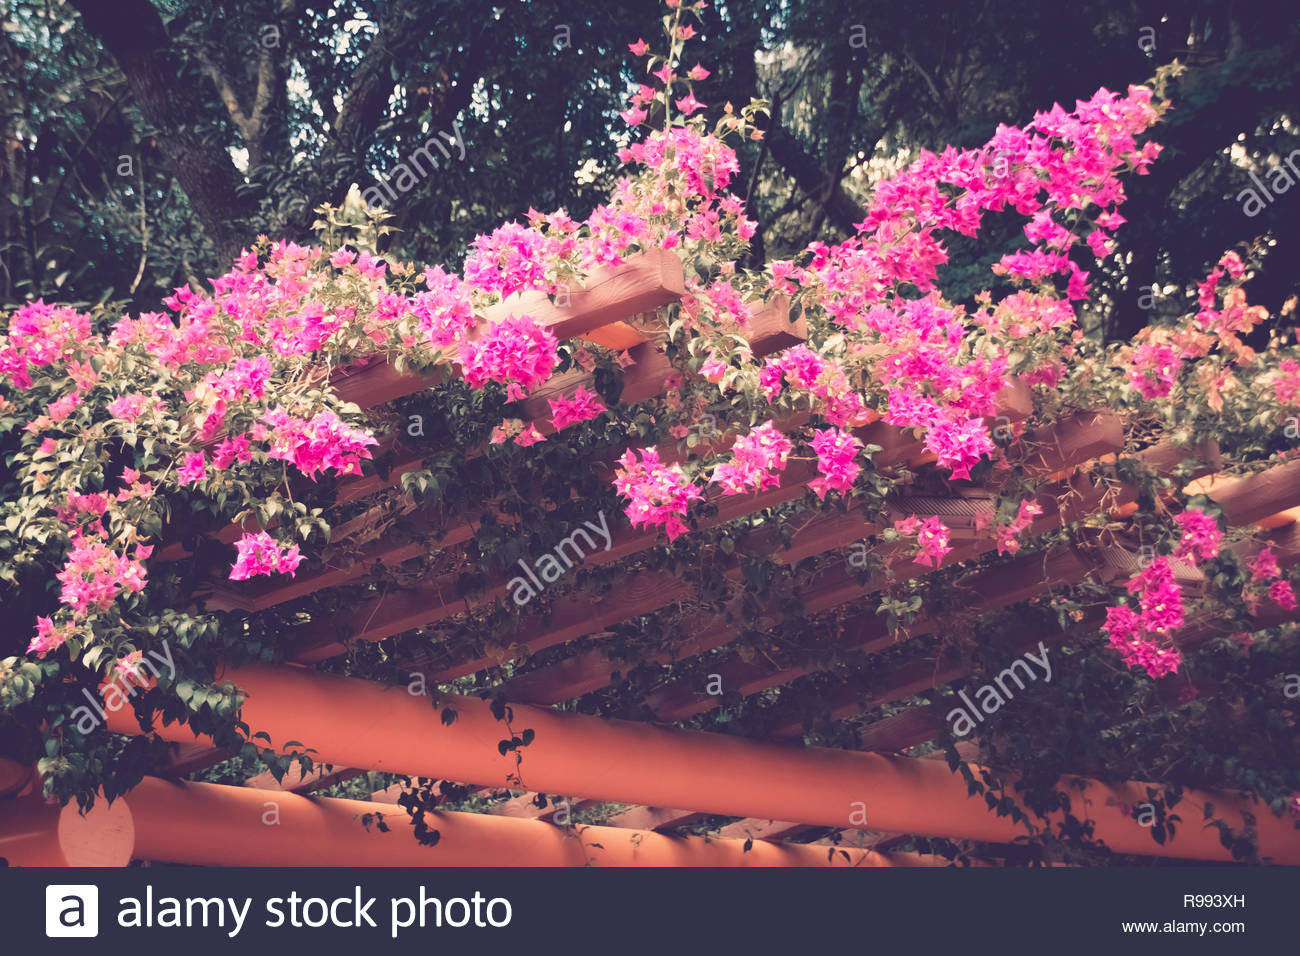 Flowers Trees And Landscape View In South Florida Stock Photo